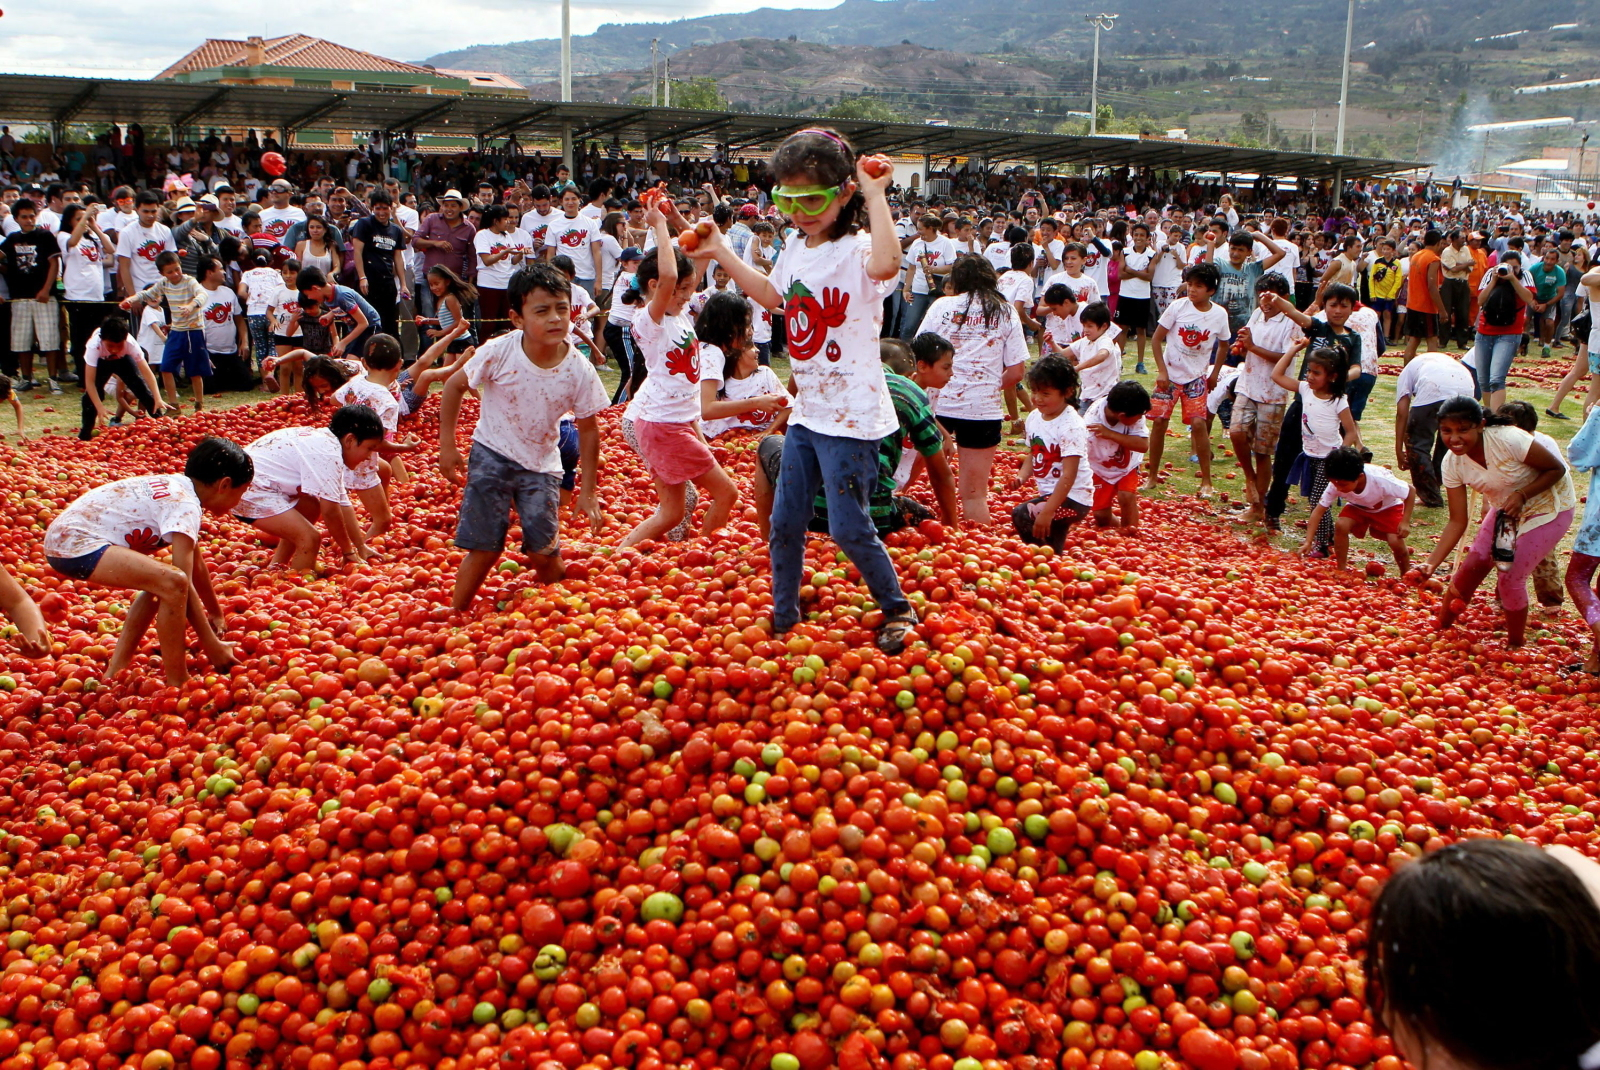 The Tomatina tomato harvest festival in Sutamarchan